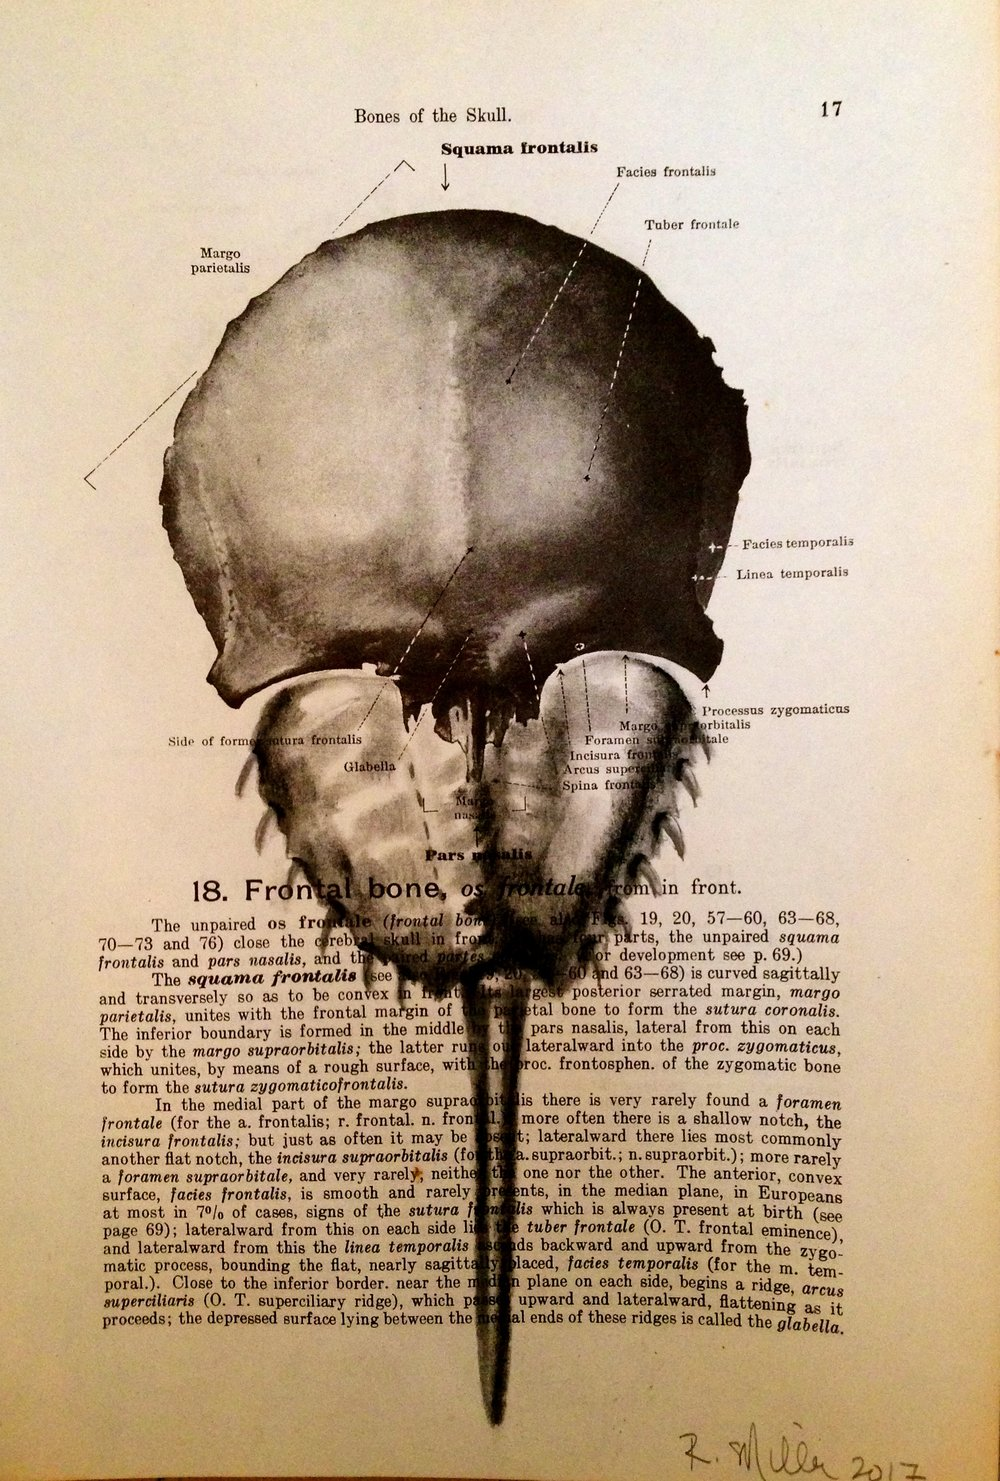 1861 Anatomy paper for frontal skull, I see horseshoe crab Braincrab, 2017 Charcoal on antique 1861 medical paper